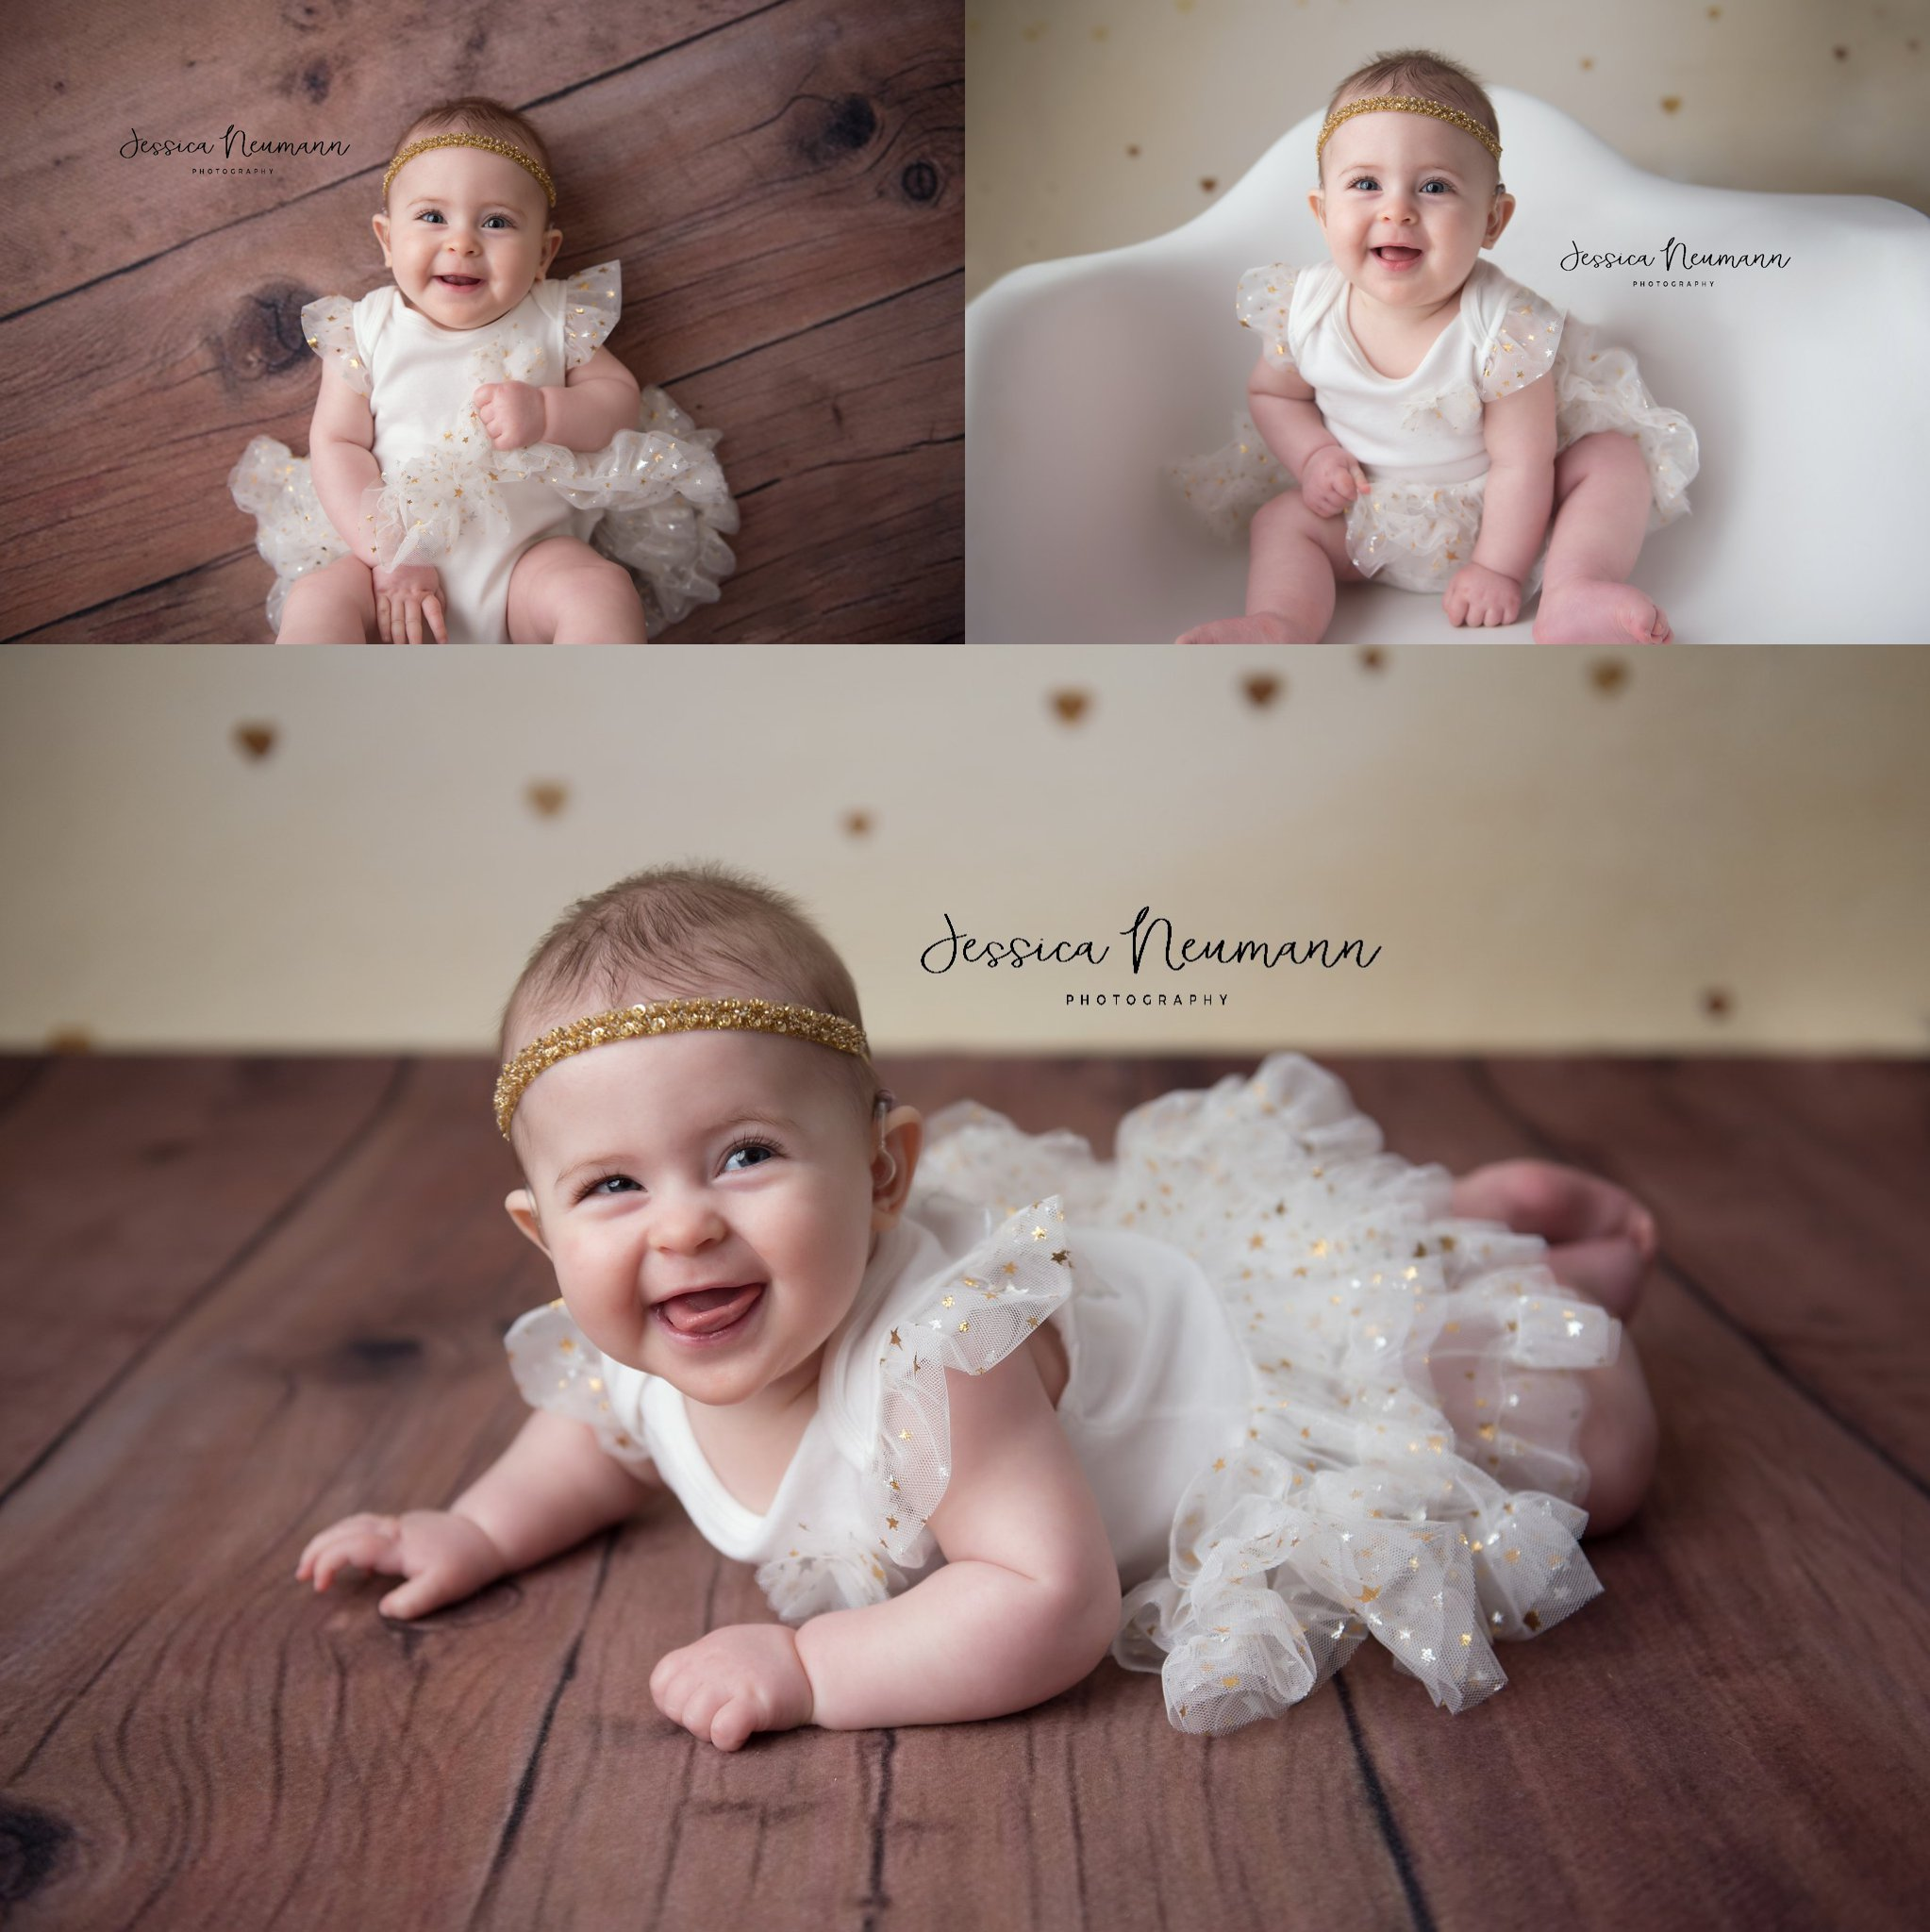 Six month old girl photo session in Baltimore, MD